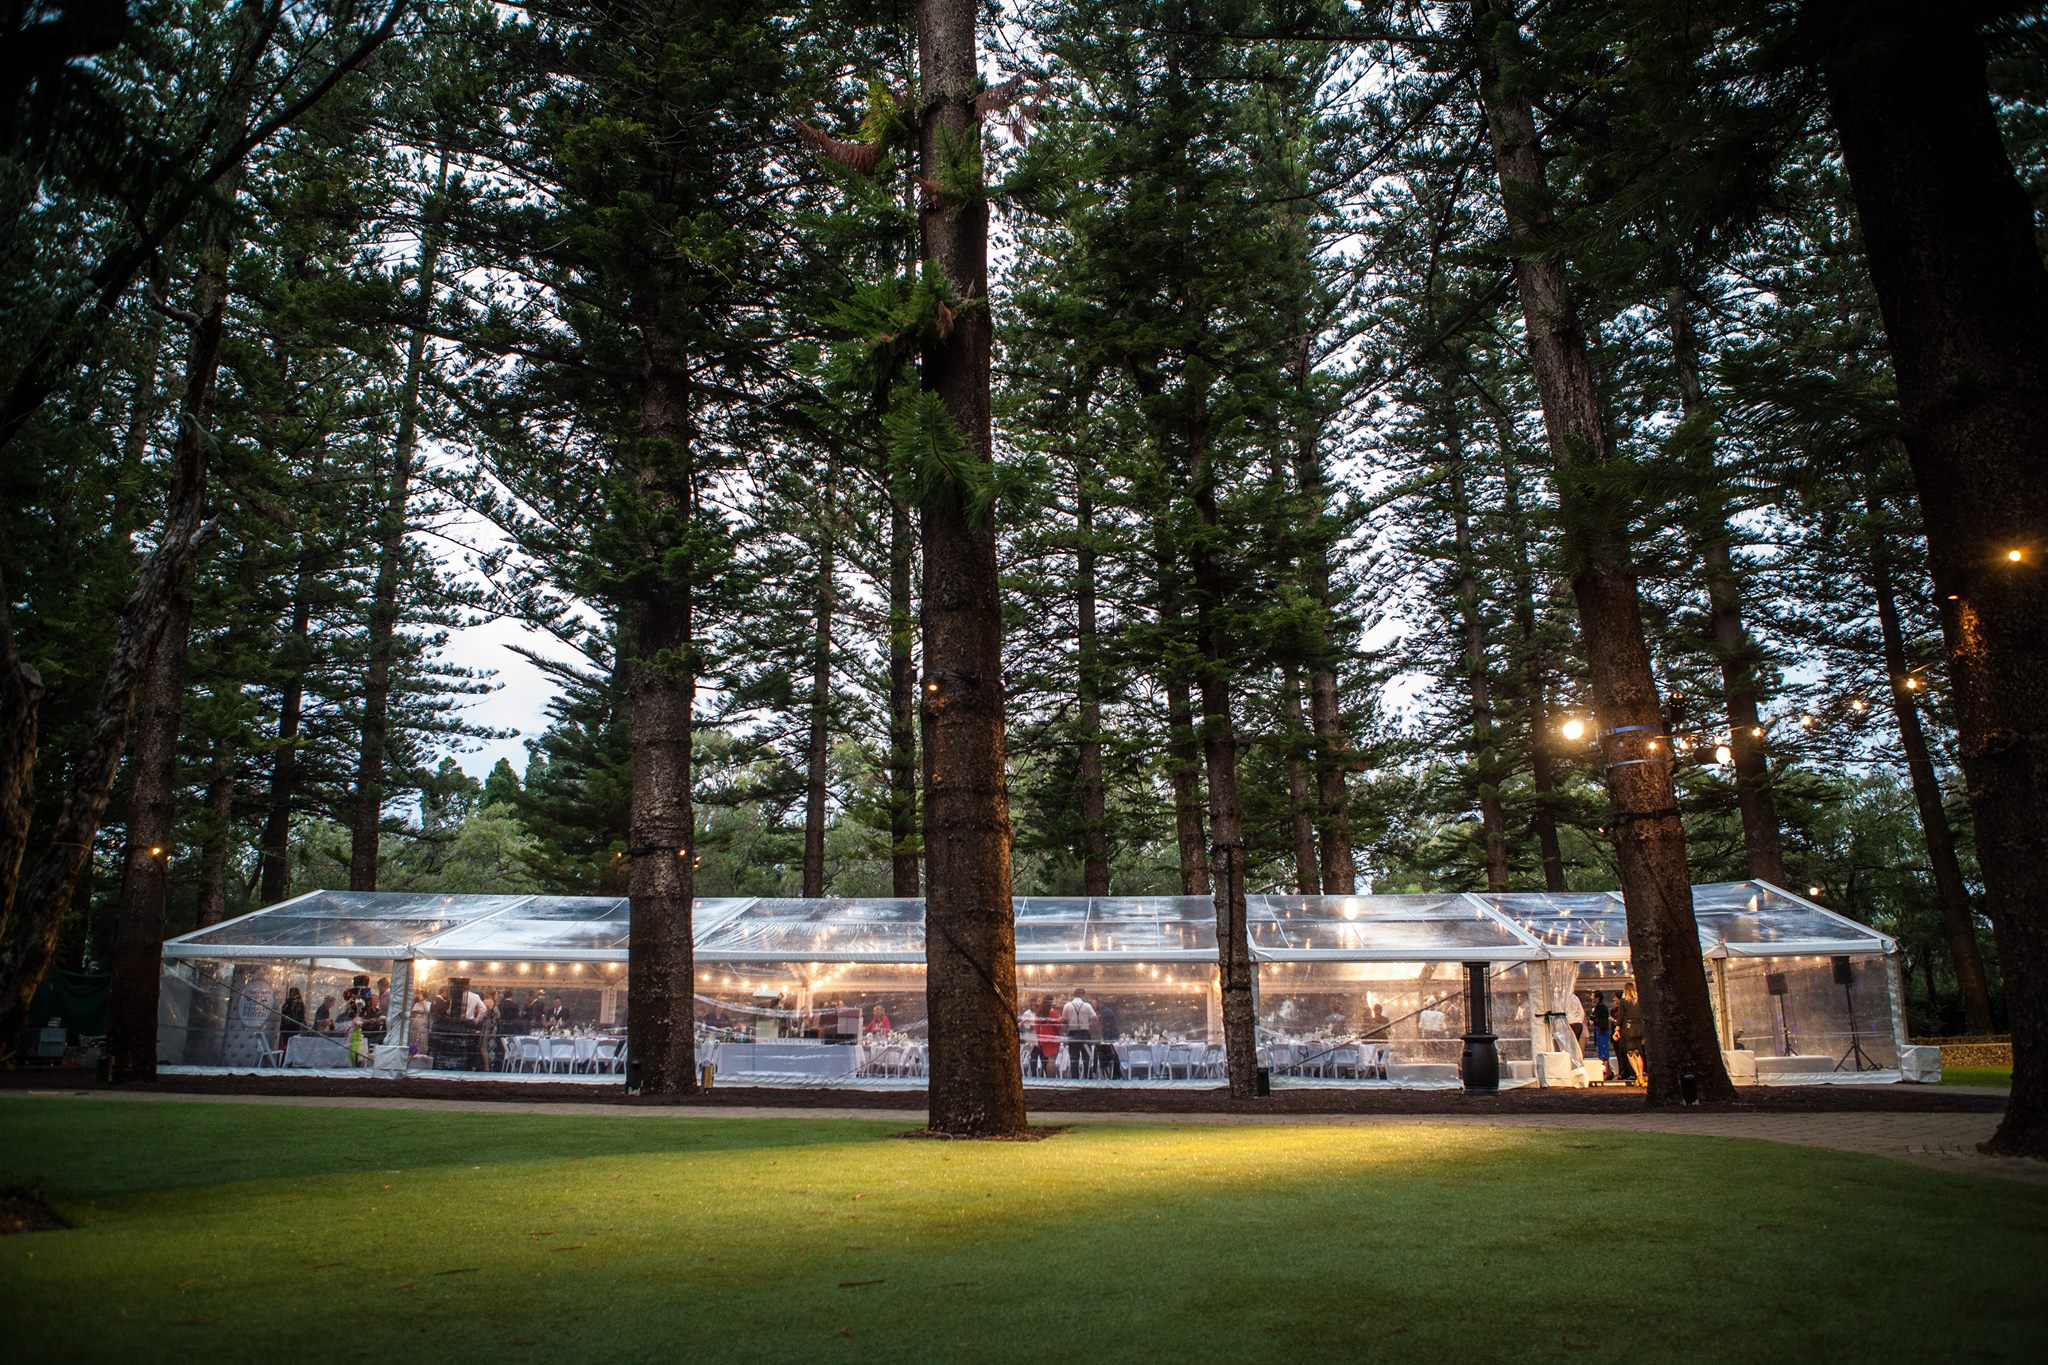 Corporate catering in Shimla  | Red Tag Caterers | Corporate catering in Shimla, best corporate caterers in Shimla, party caterer in Shimla, top corporate caterer in Shimla,  - GL43912